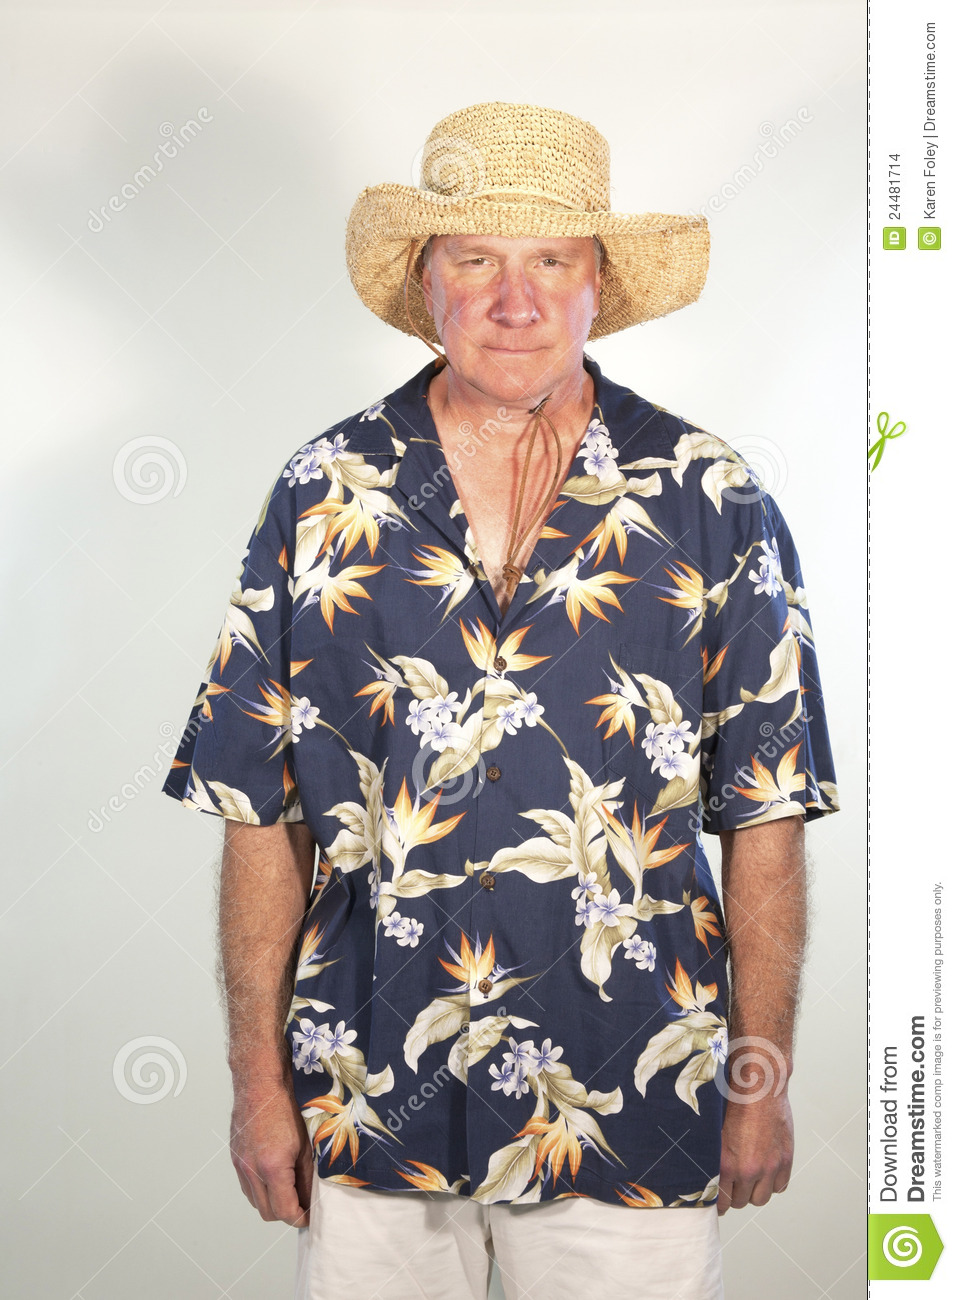 1bad9e4da Senior Tourist stock photo. Image of adventurous, traveling - 24481714